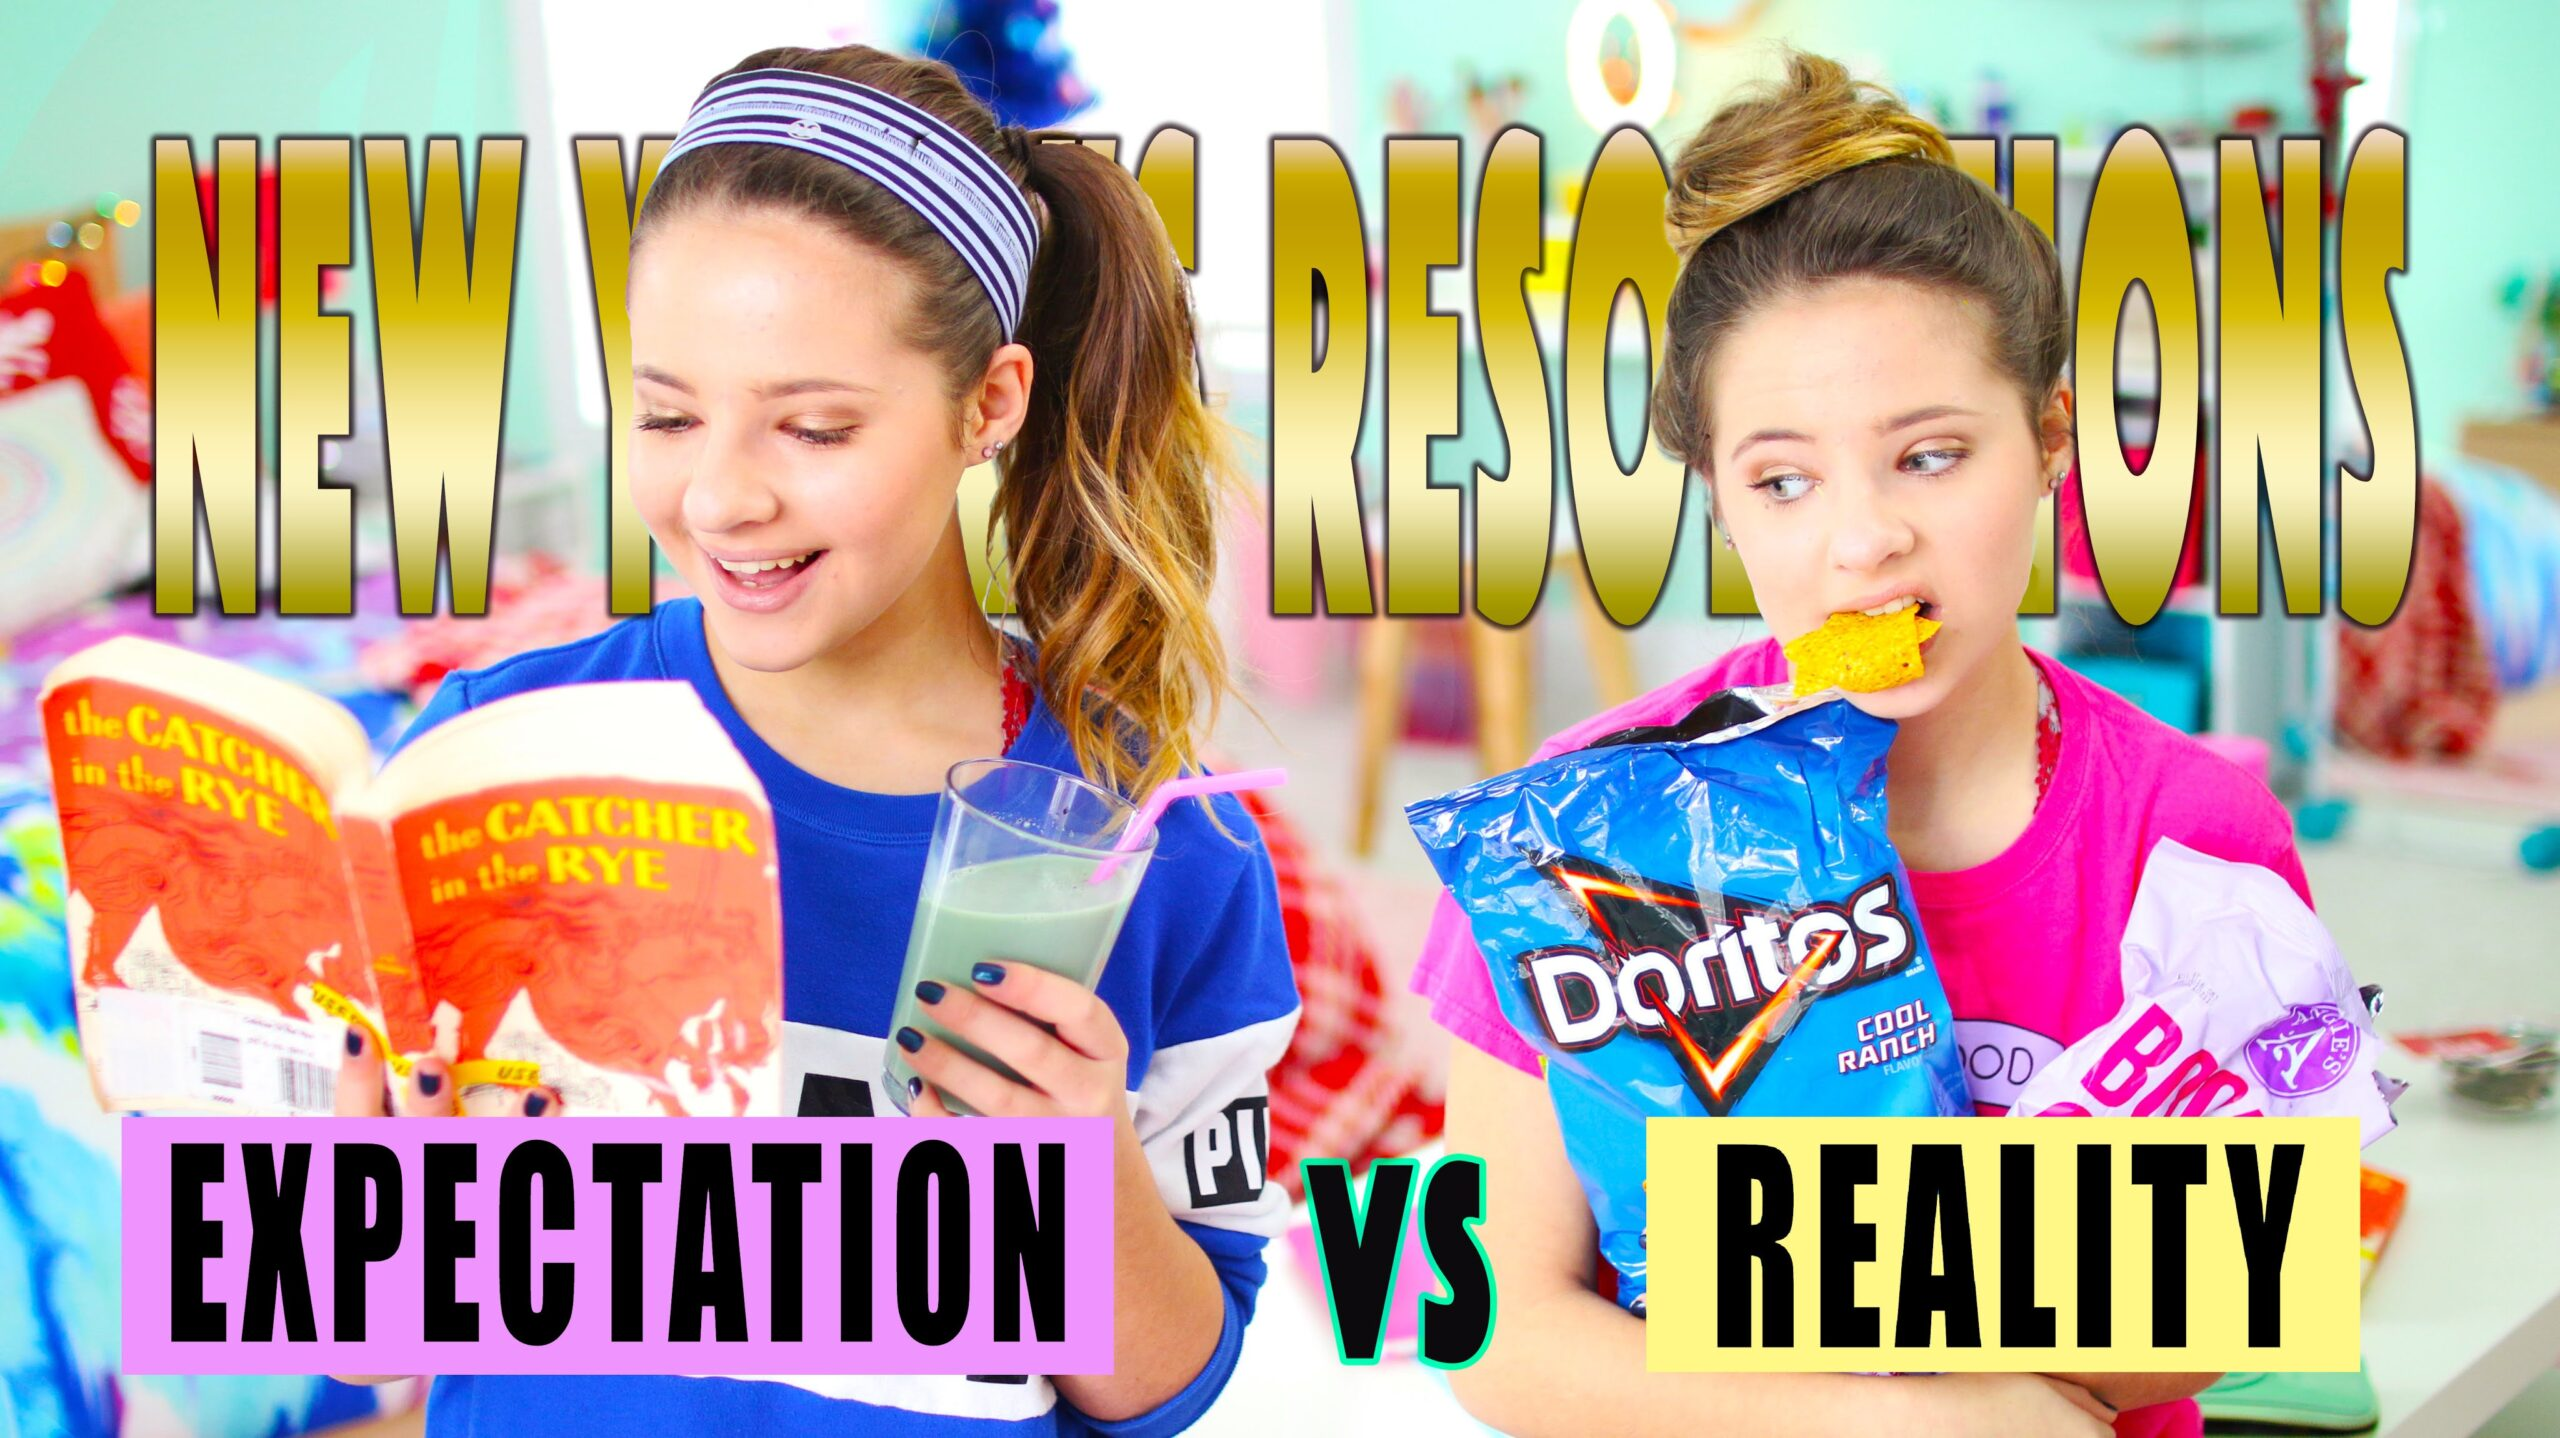 New Year's Resolutions: Expectations vs. Reality